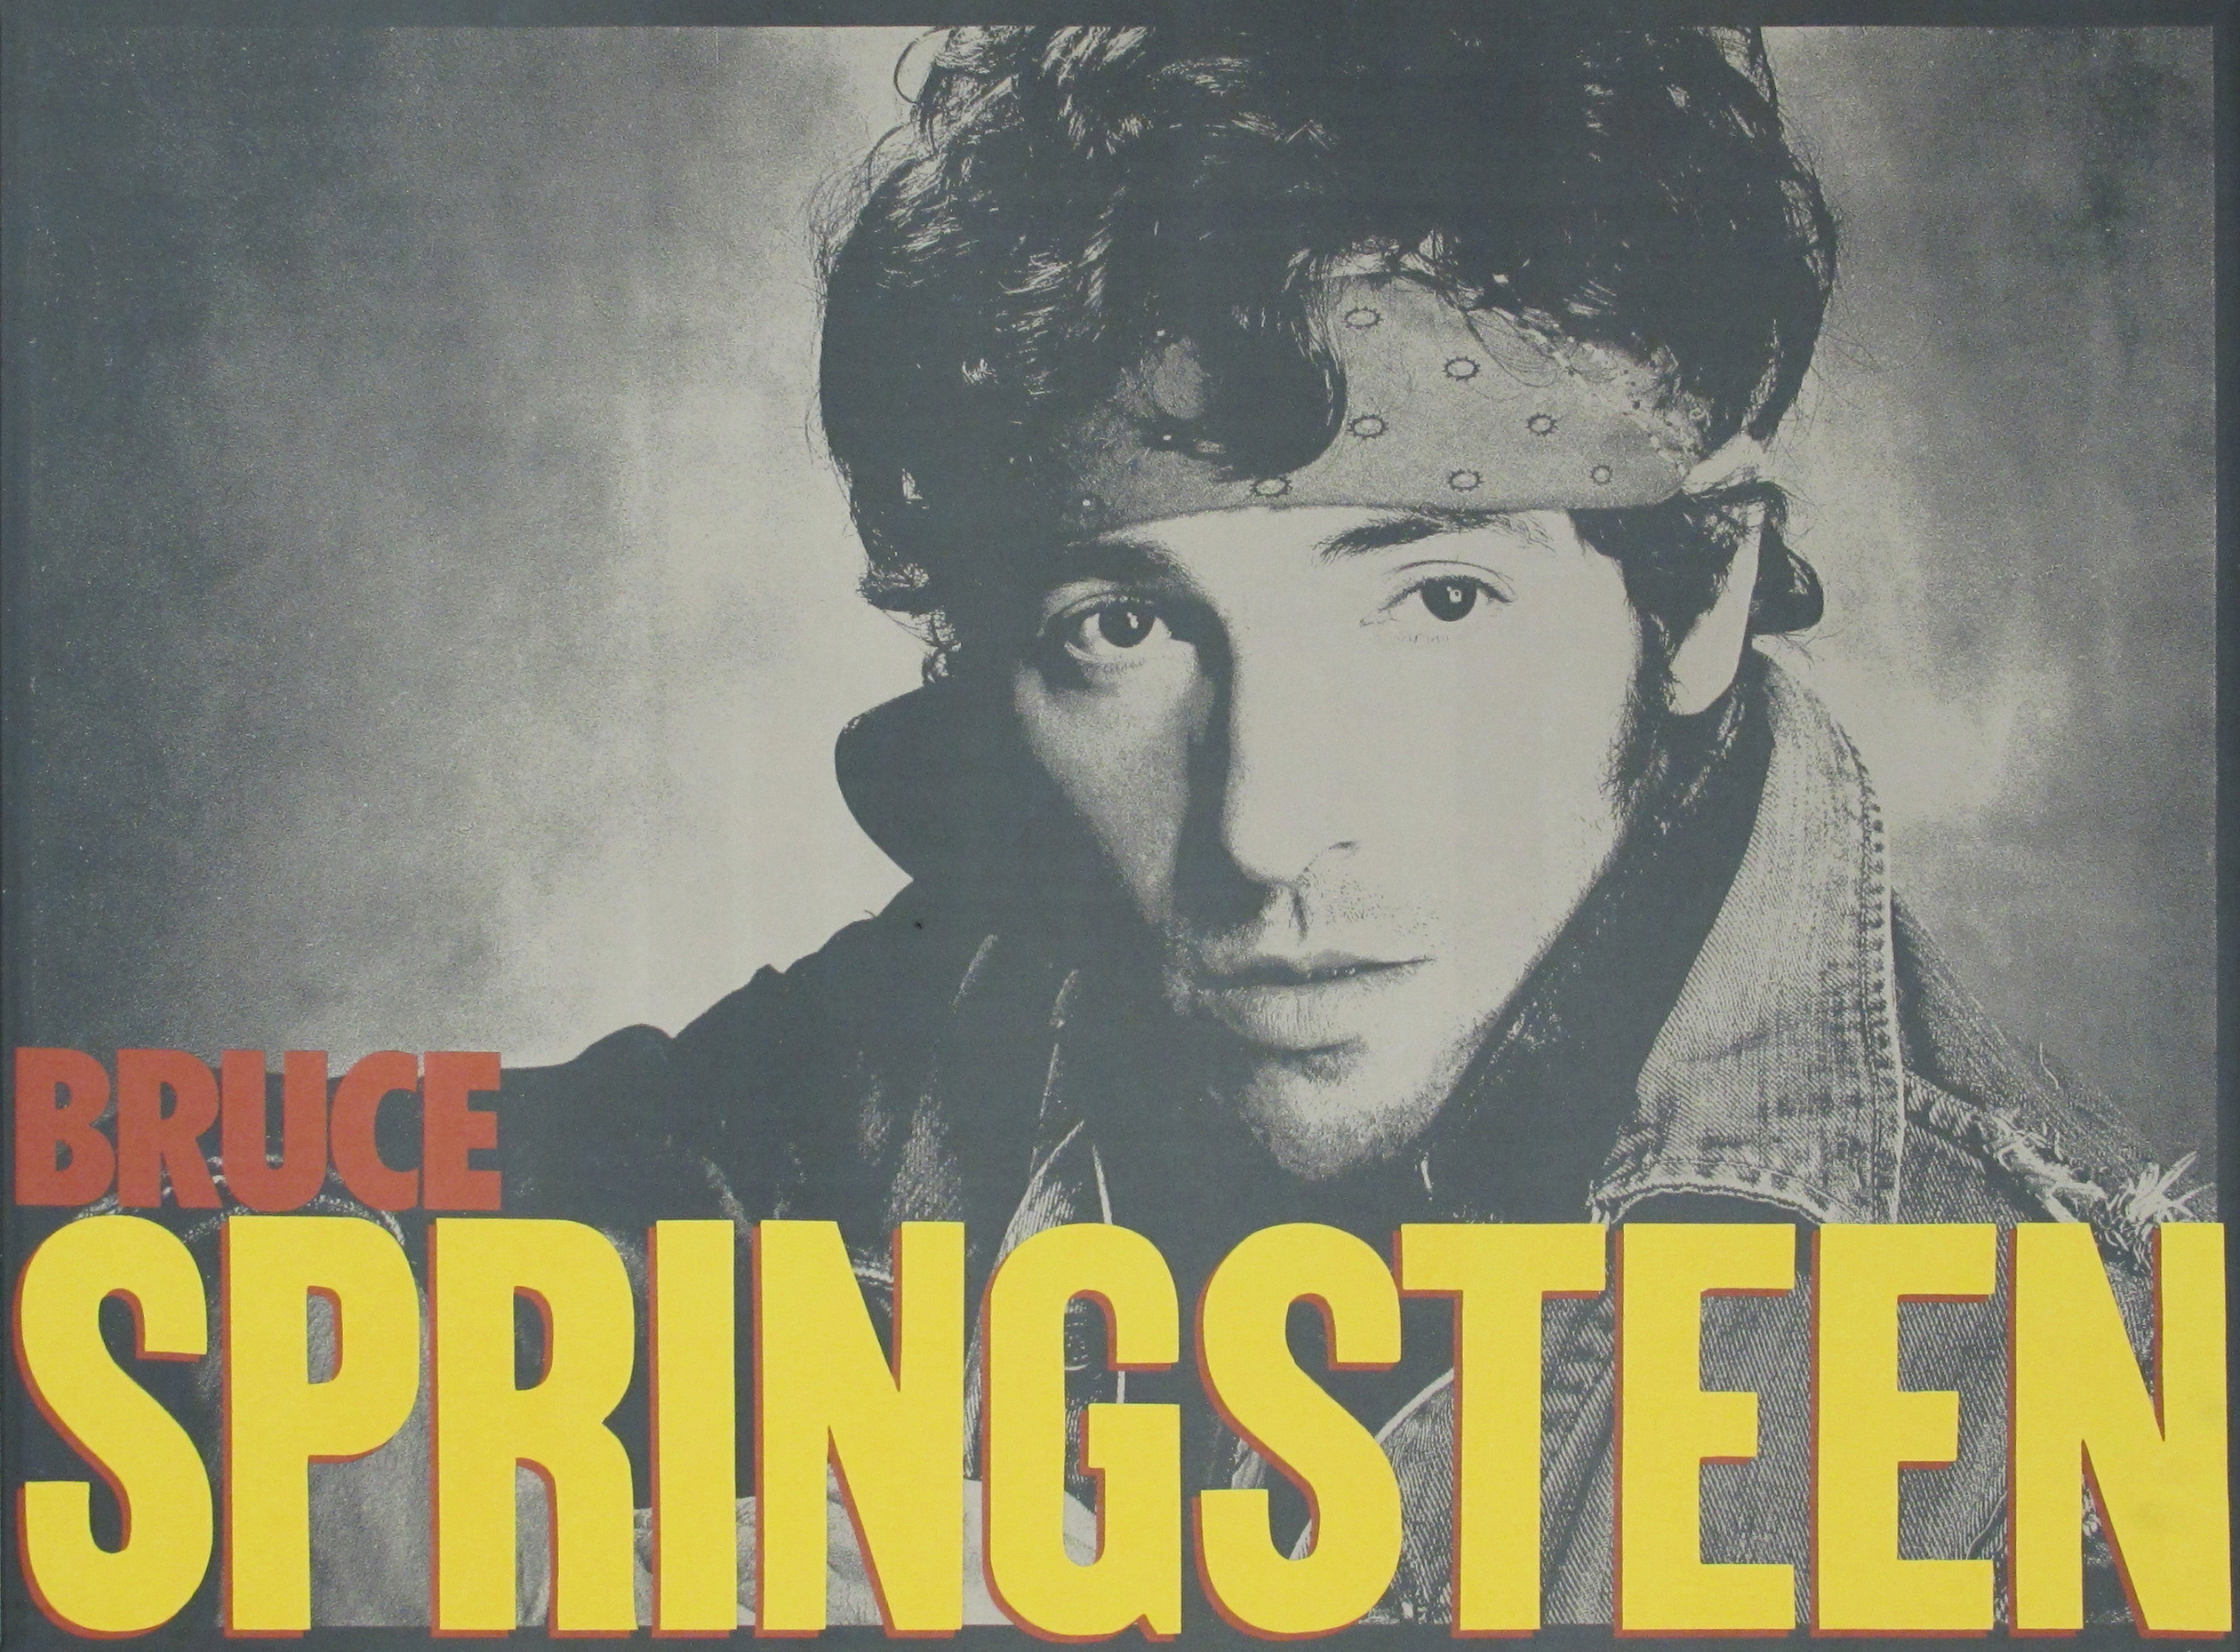 an analysis of the works of bruce springsteen Bruce springsteen track analysis for in terms of his work before live audiences, springsteen has earned legendary status for the energy and duration of his.